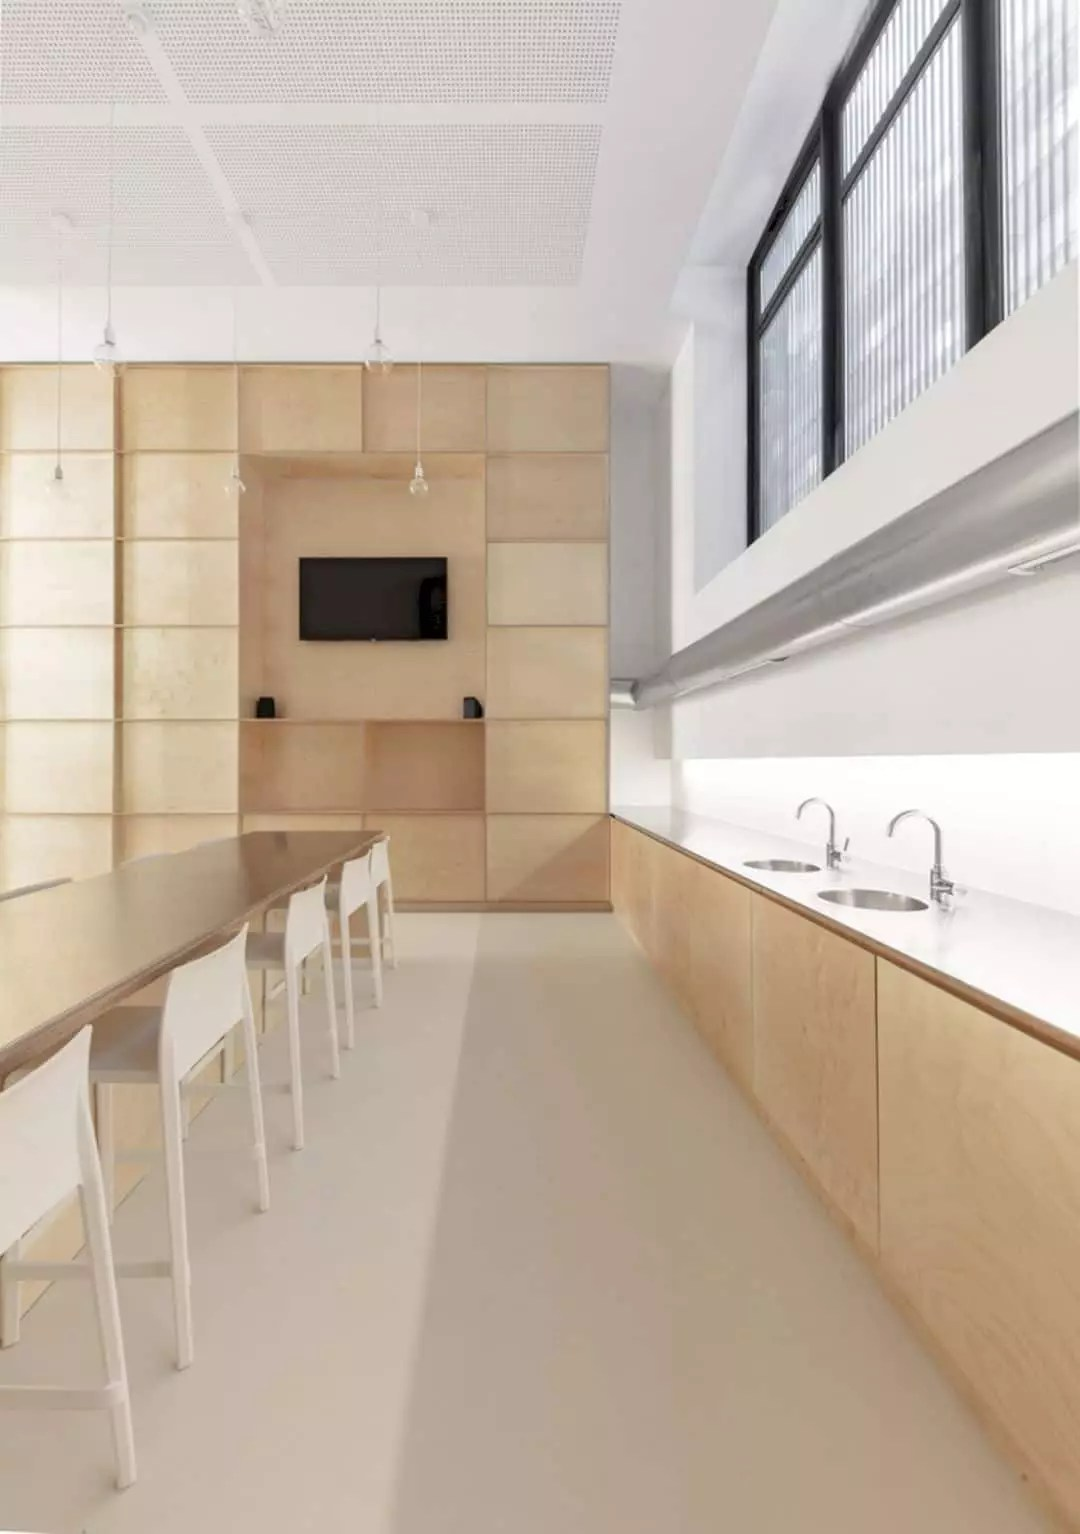 OMICS: New Buildings with Modern Interior for Offices and Research Laboratories